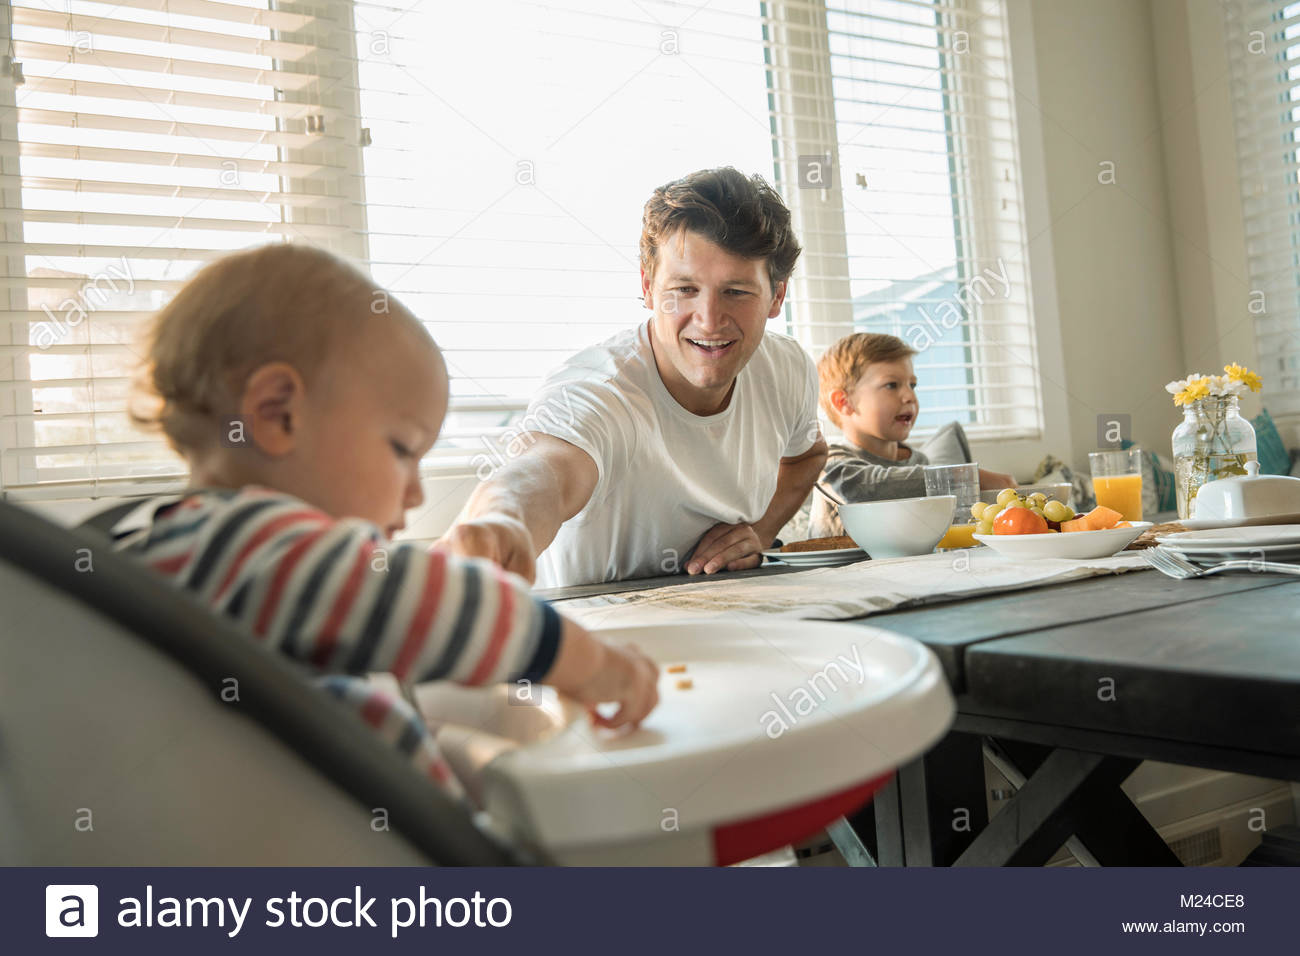 Father feeding baby son in high chair - Stock Image